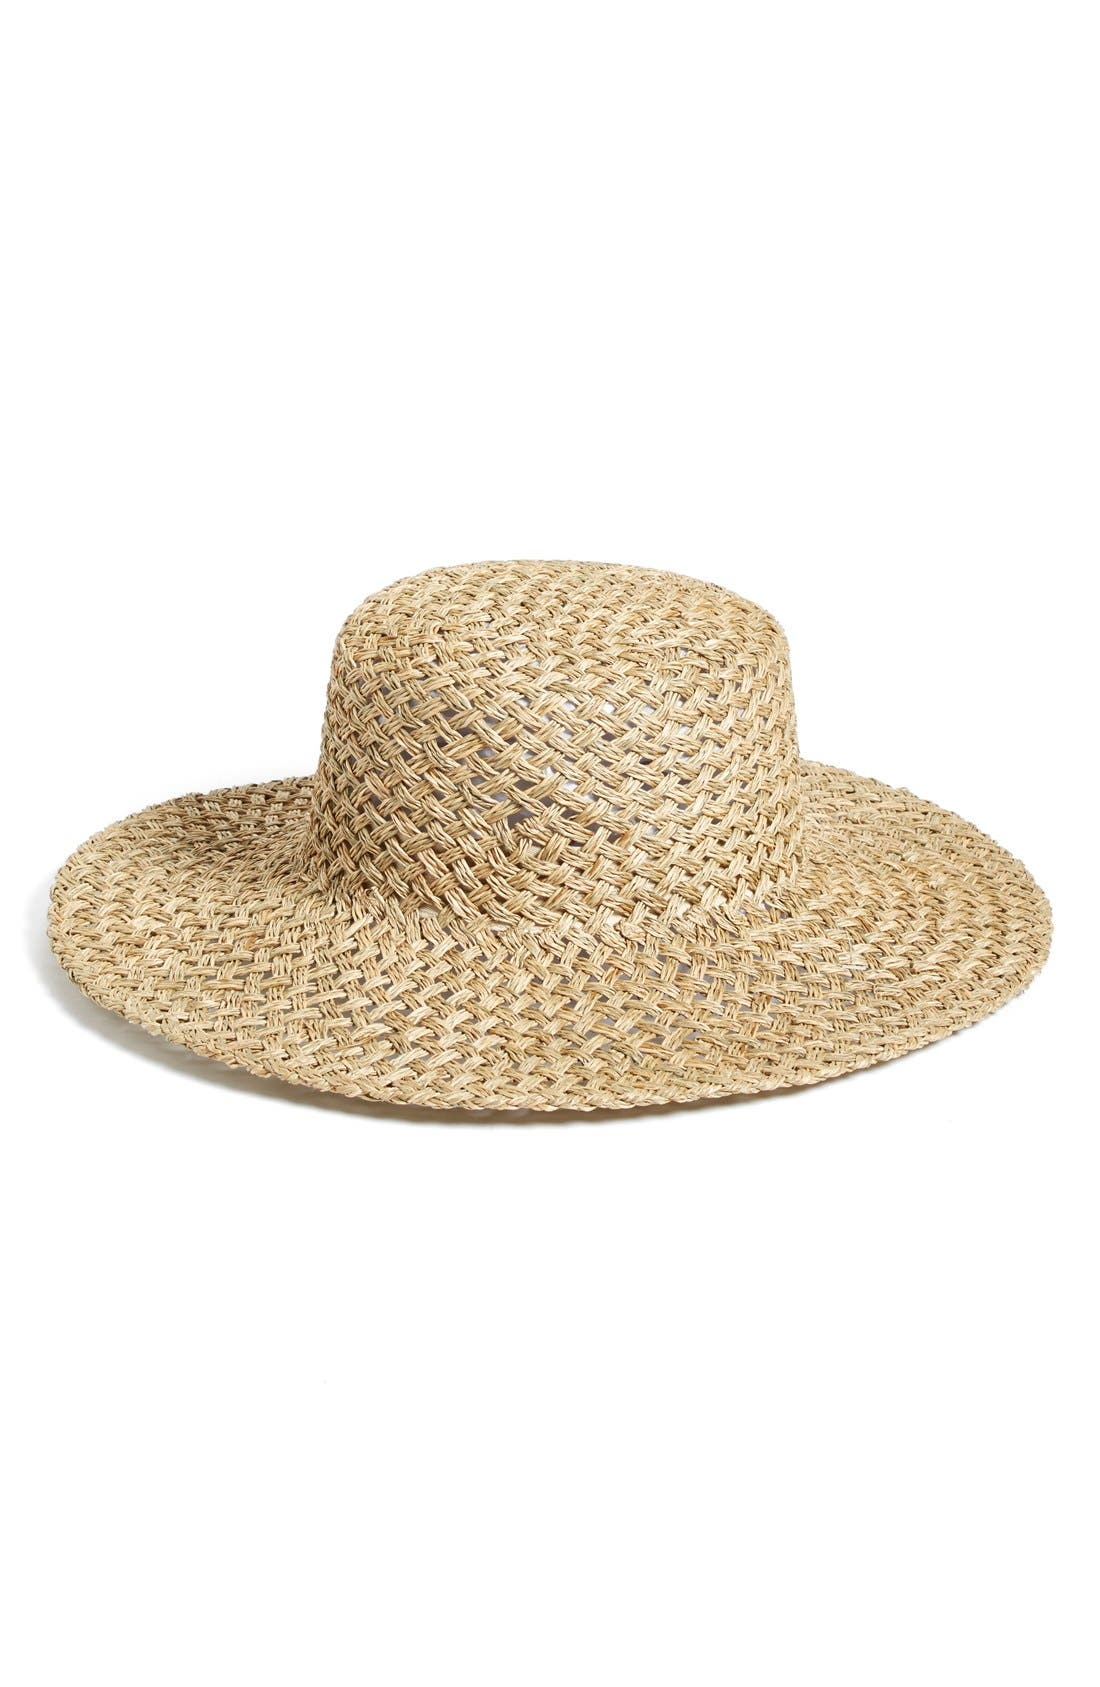 LACK OF COLOR 'The Sunny Dip' Wide Brim Woven Seagrass Hat - Beige in Natural Seagrass